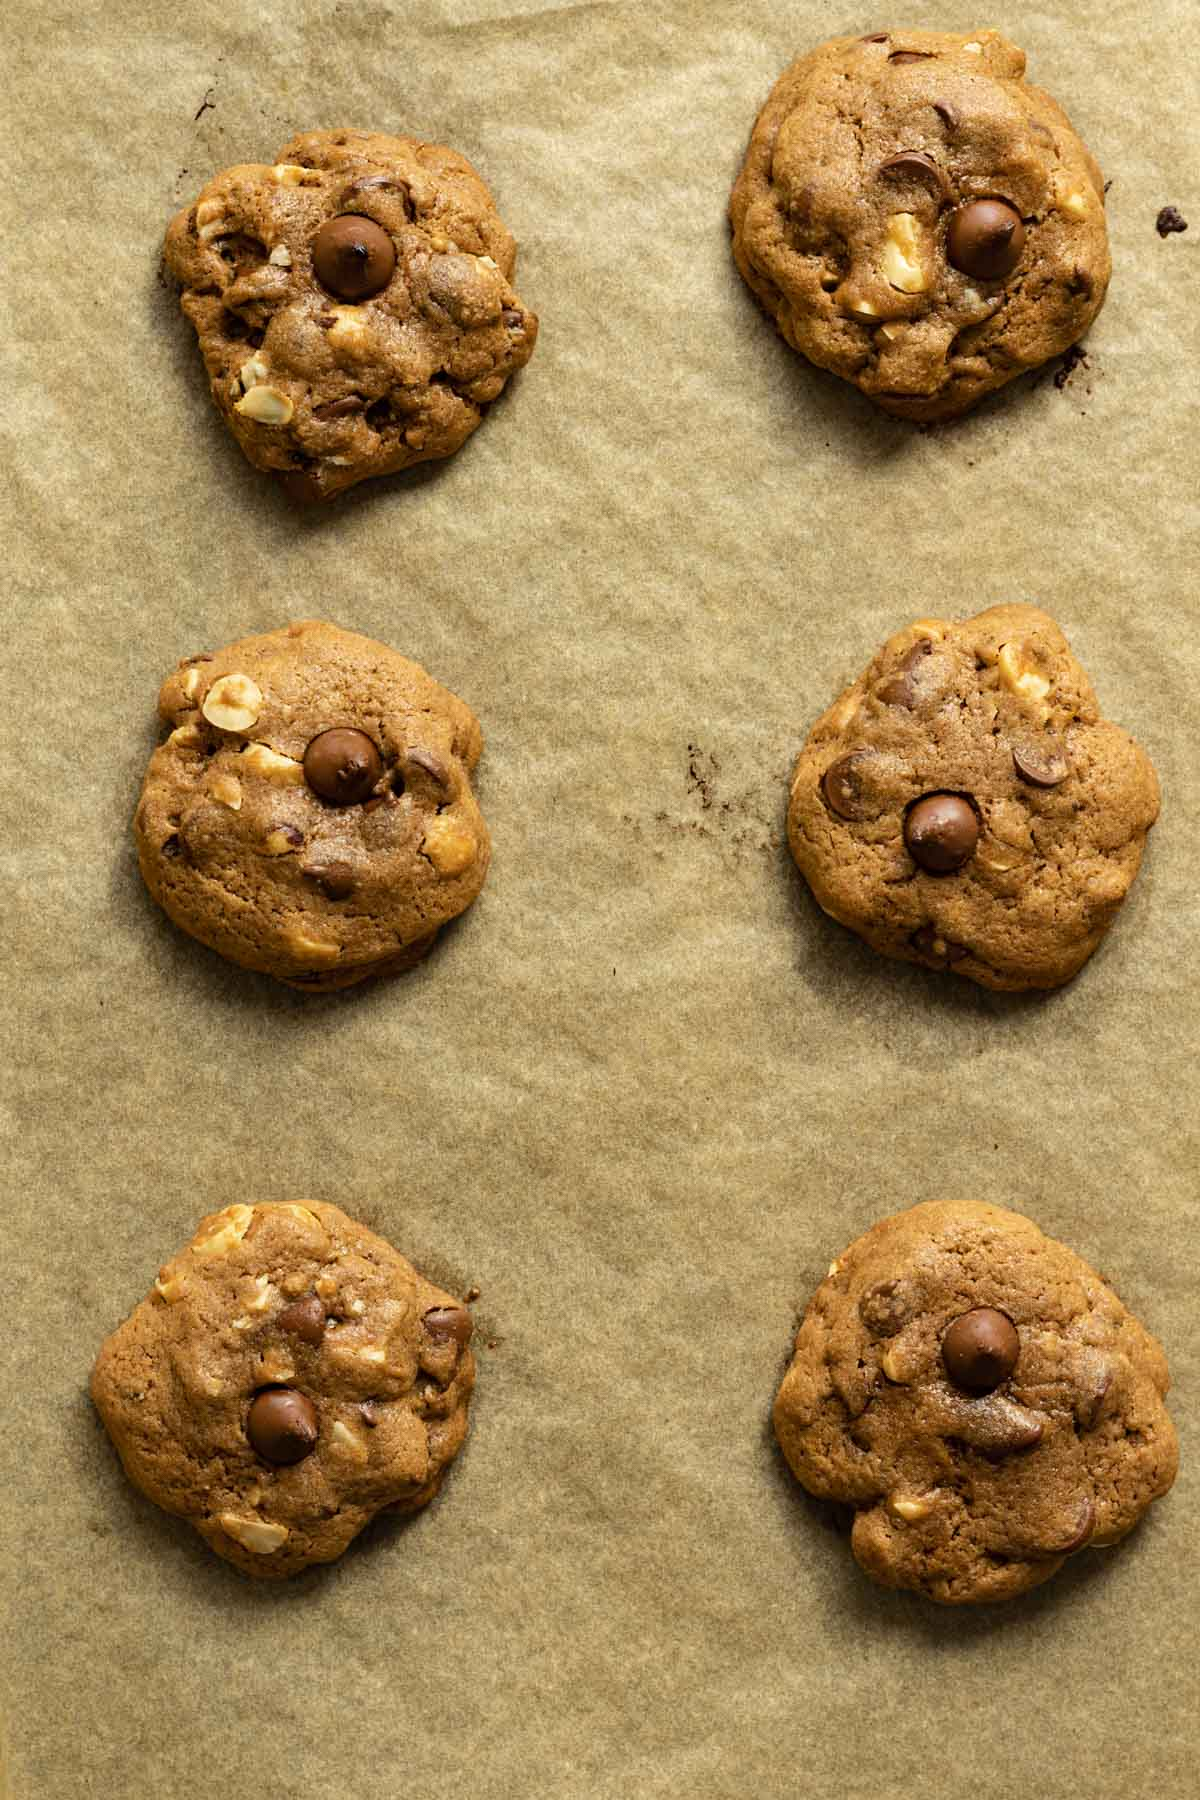 Baked double chocolate chip hazelnut cookies on parchment paper